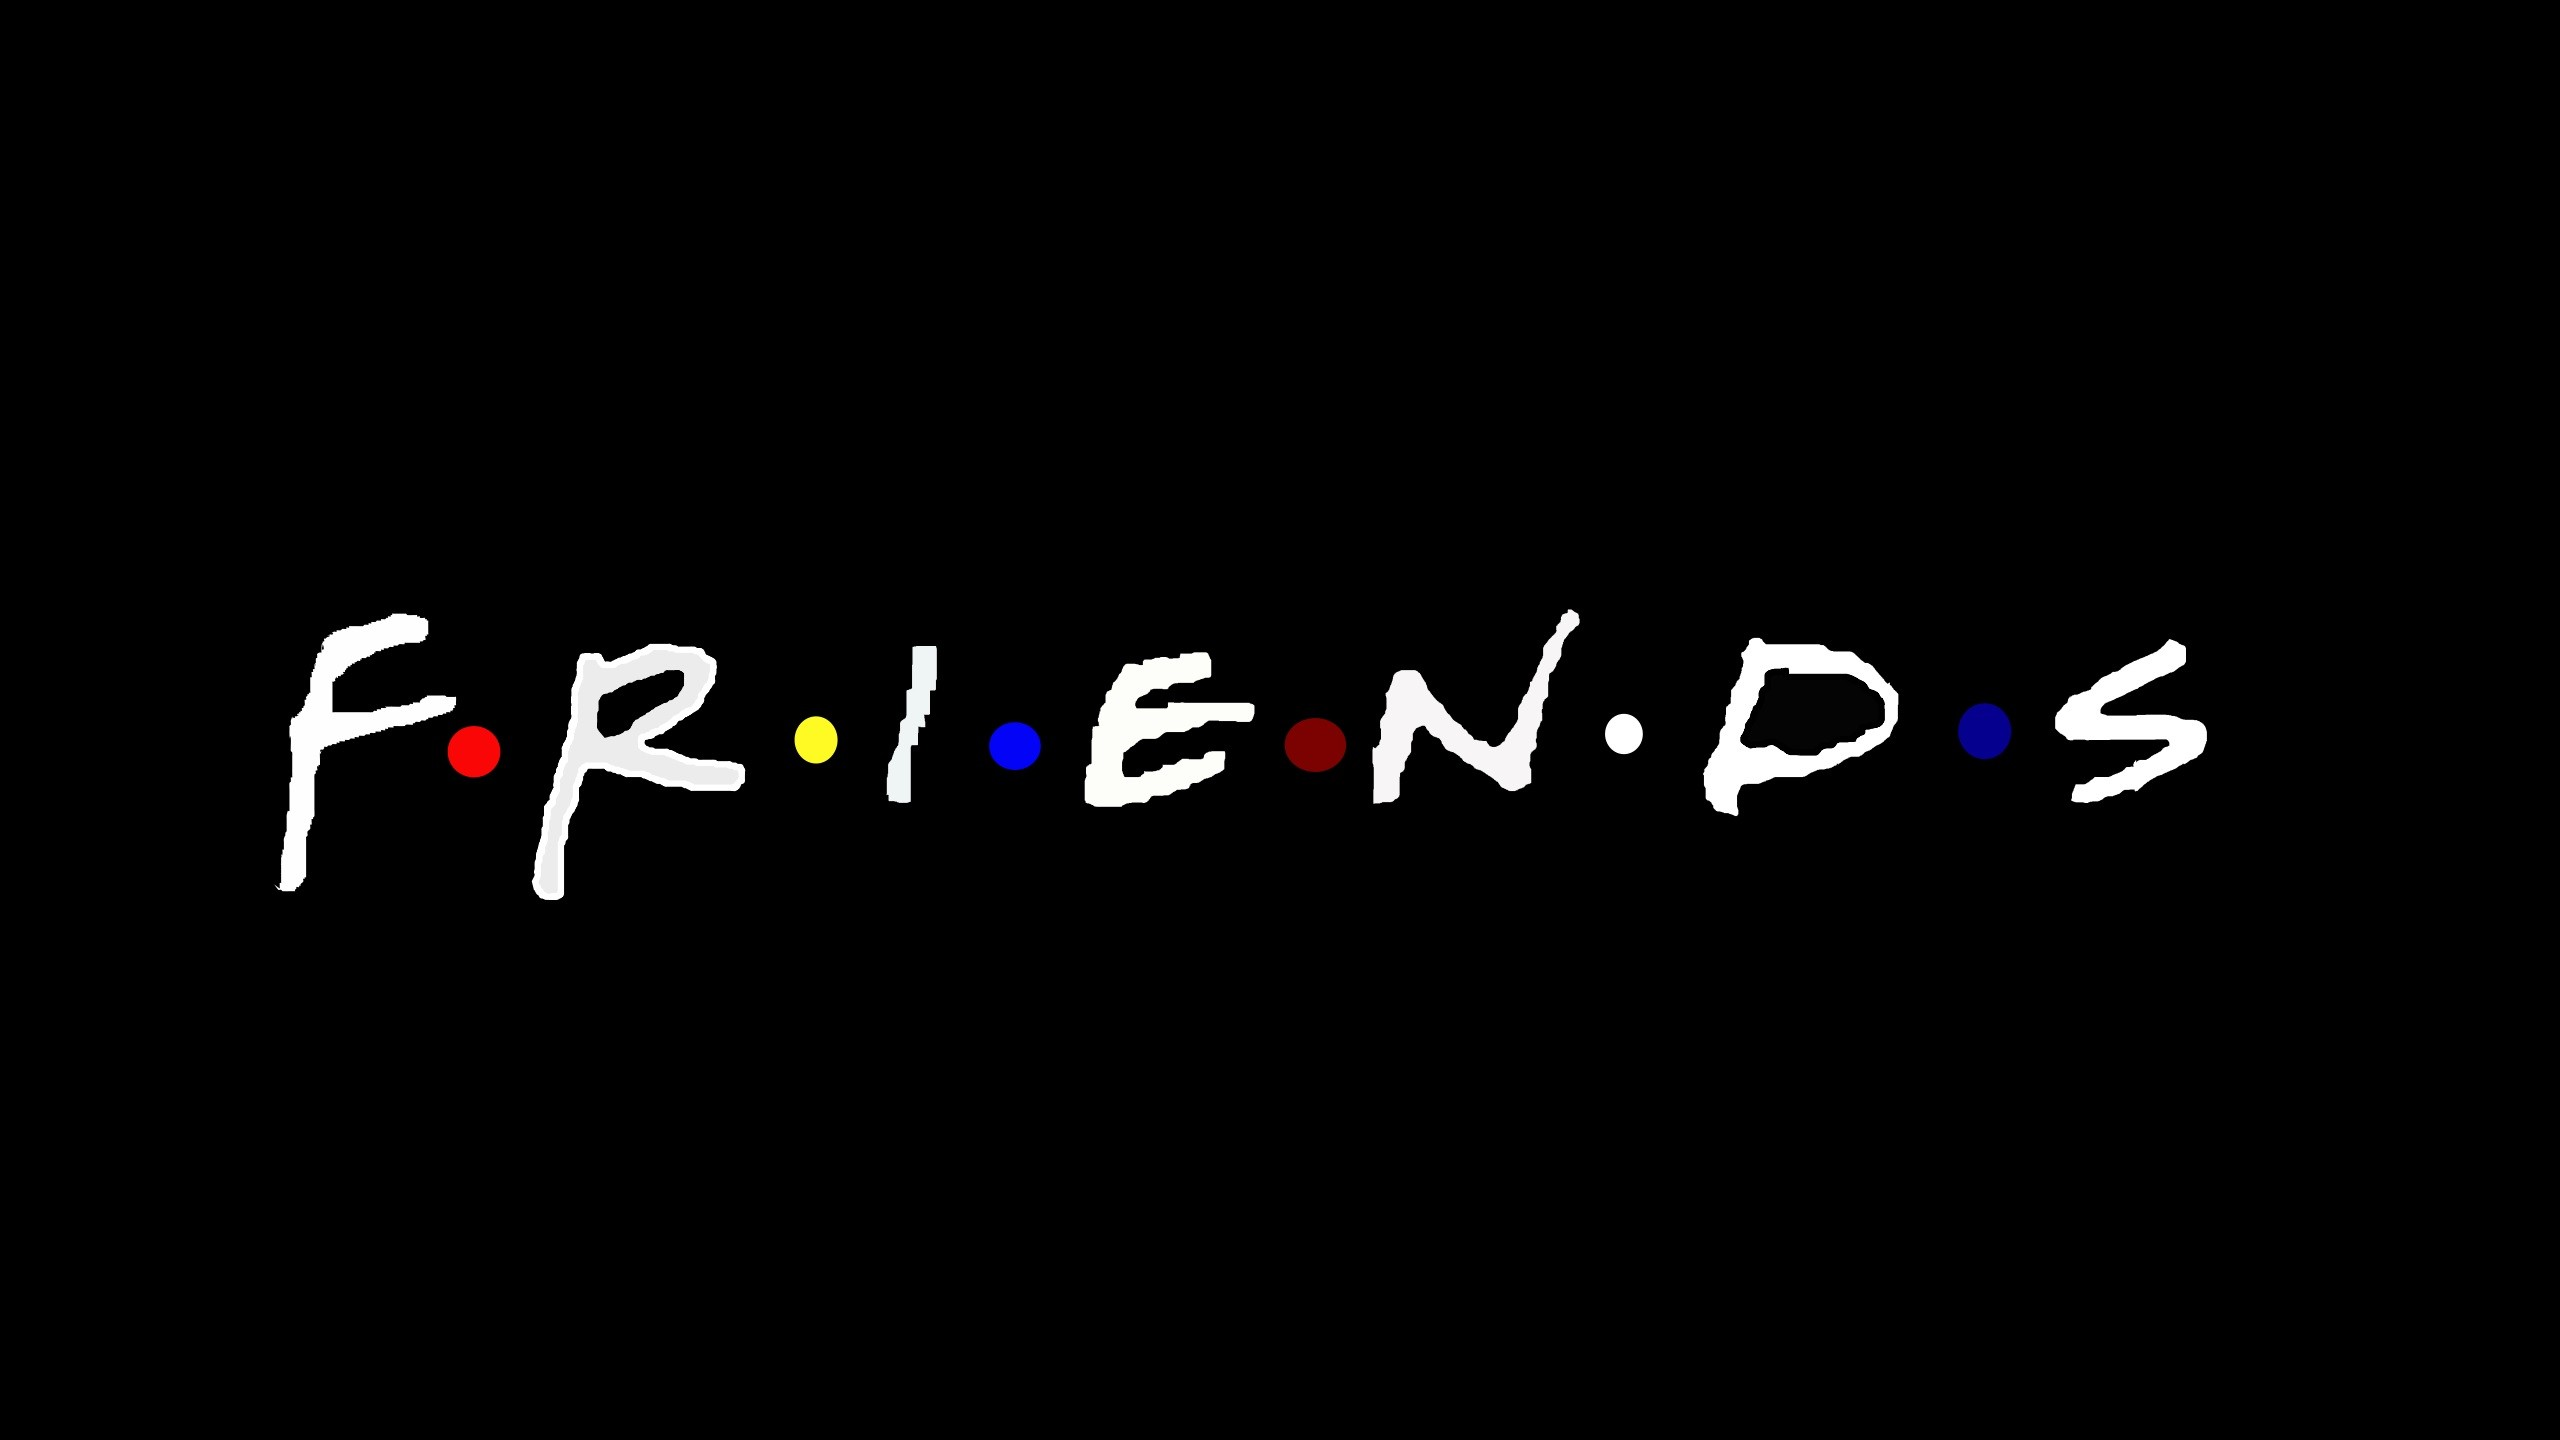 Friends Wallpapers Barbaras Hd Wallpapers